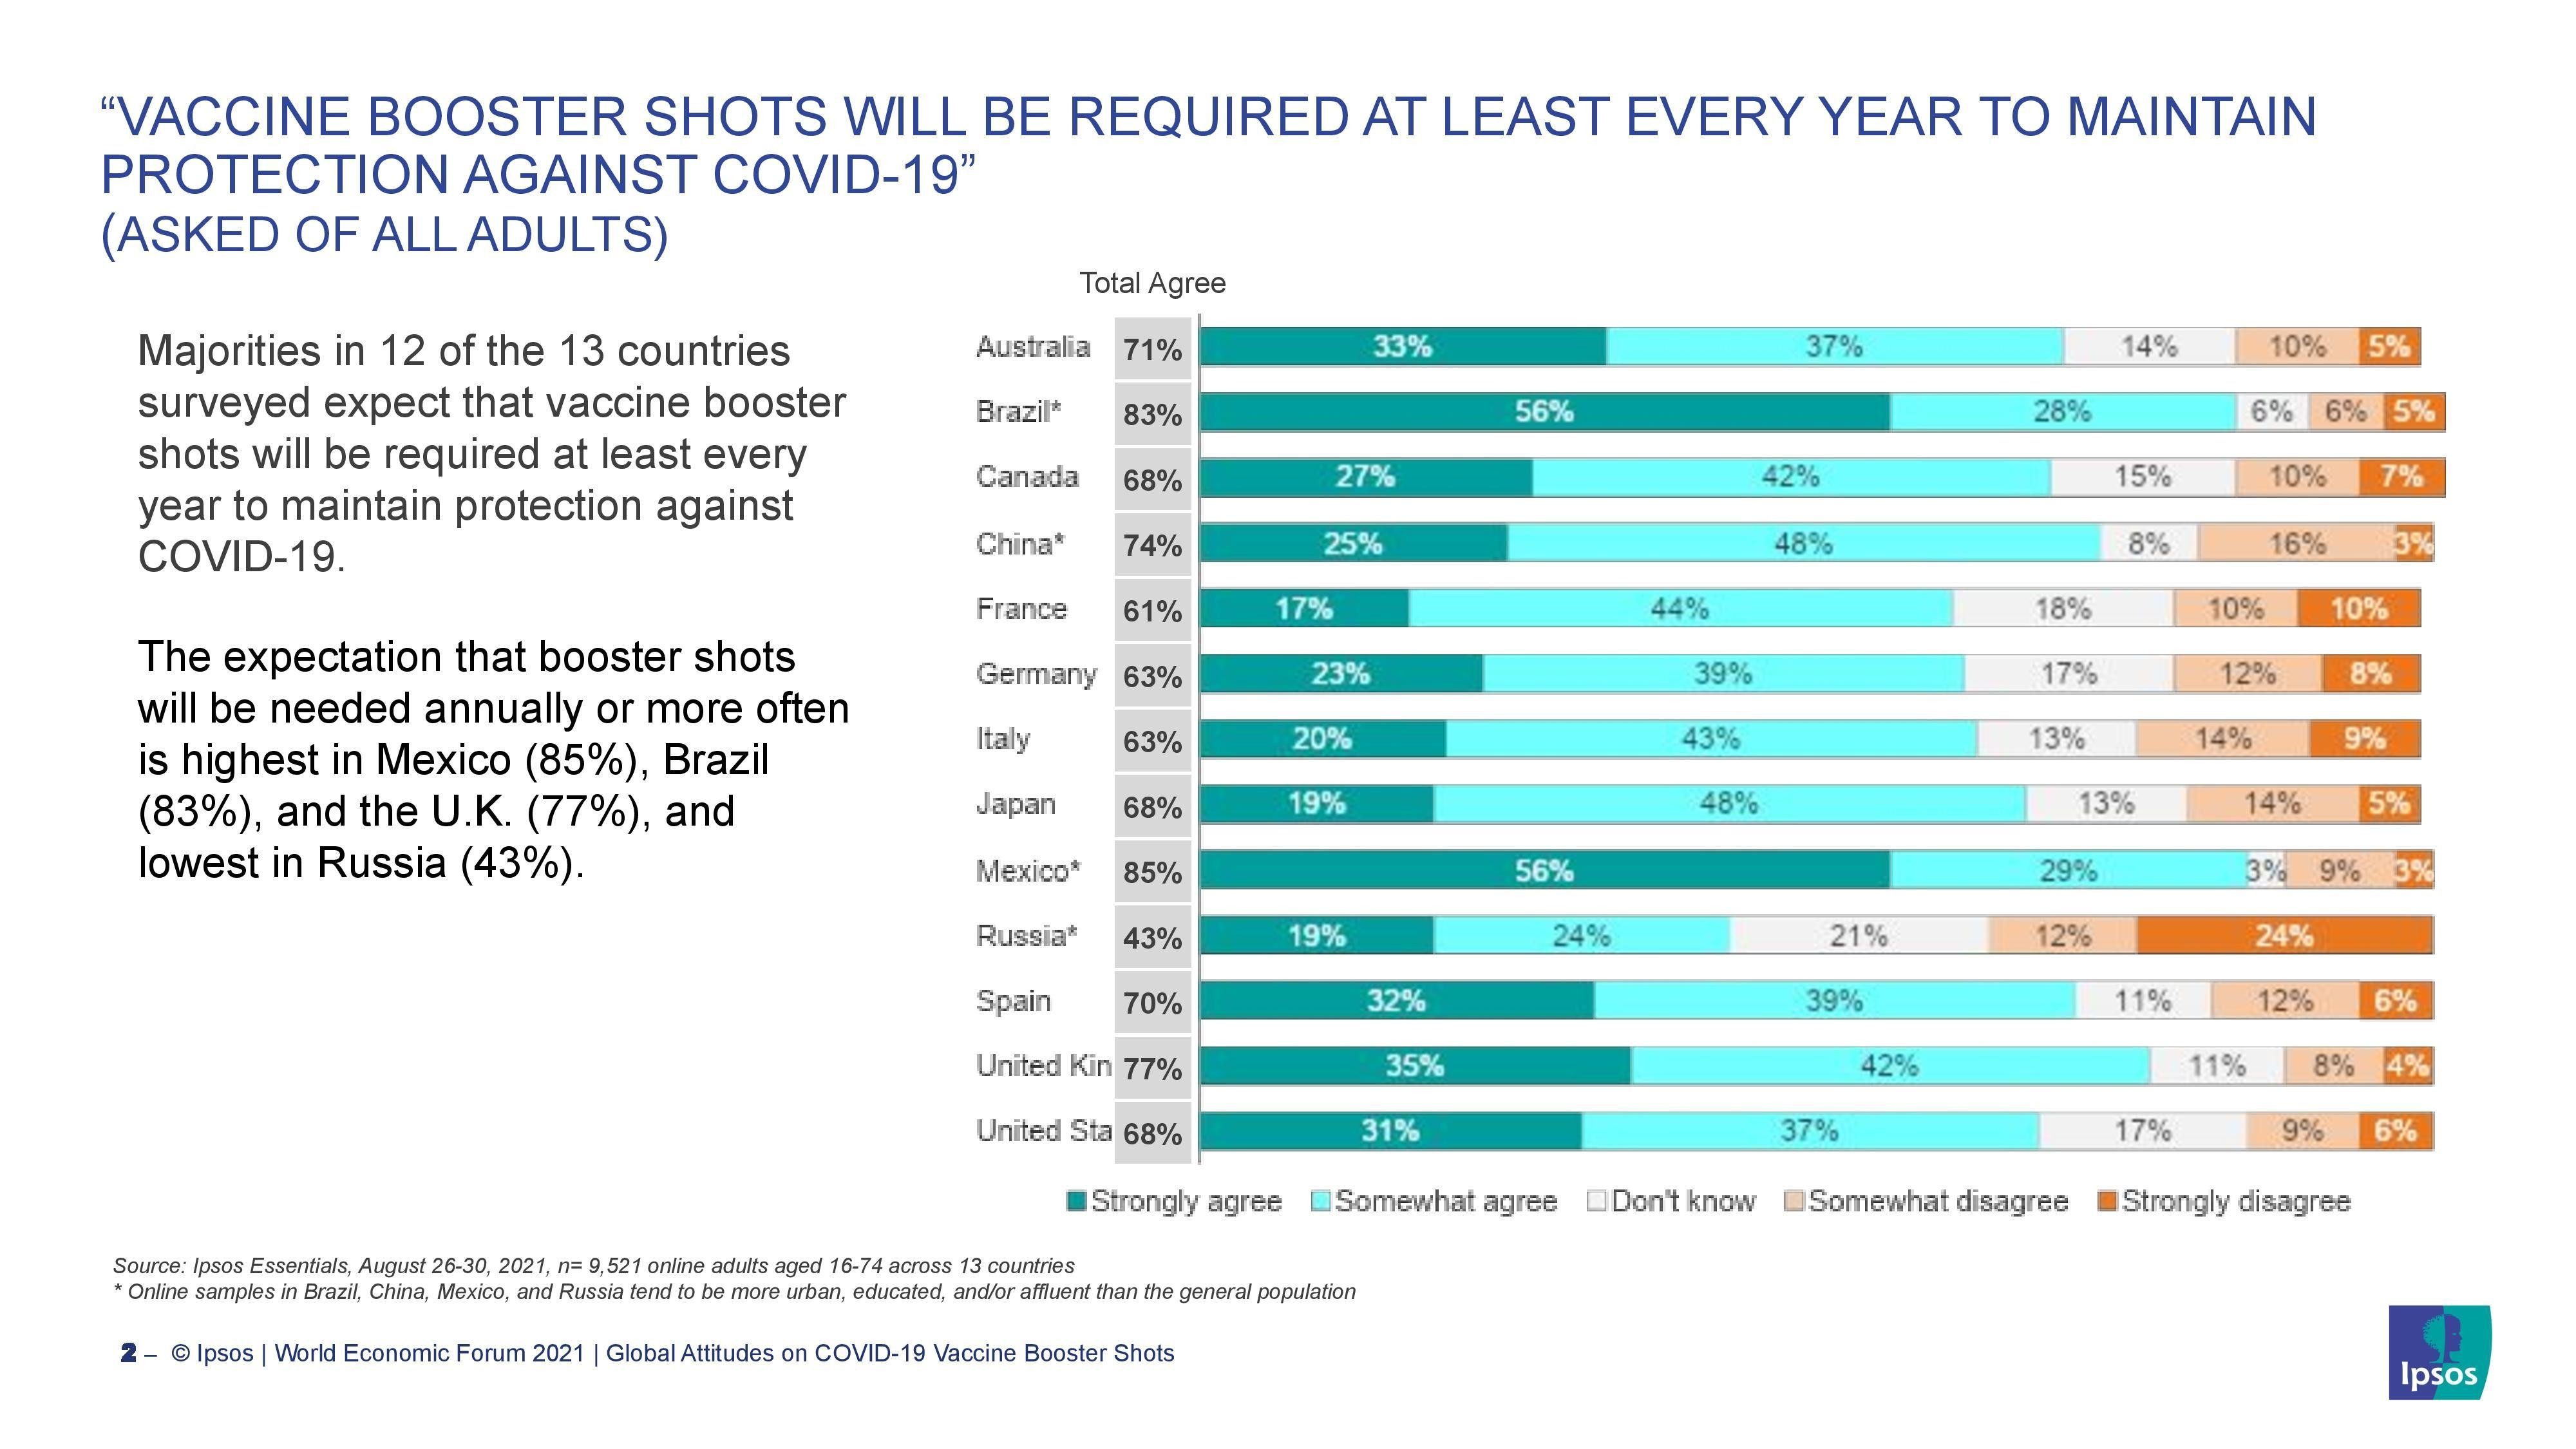 VACCINE BOOSTER SHOTS WILL BE REQUIRED AT LEAST EVERY YEAR TO MAINTAIN PROTECTION AGAINST COVID-19